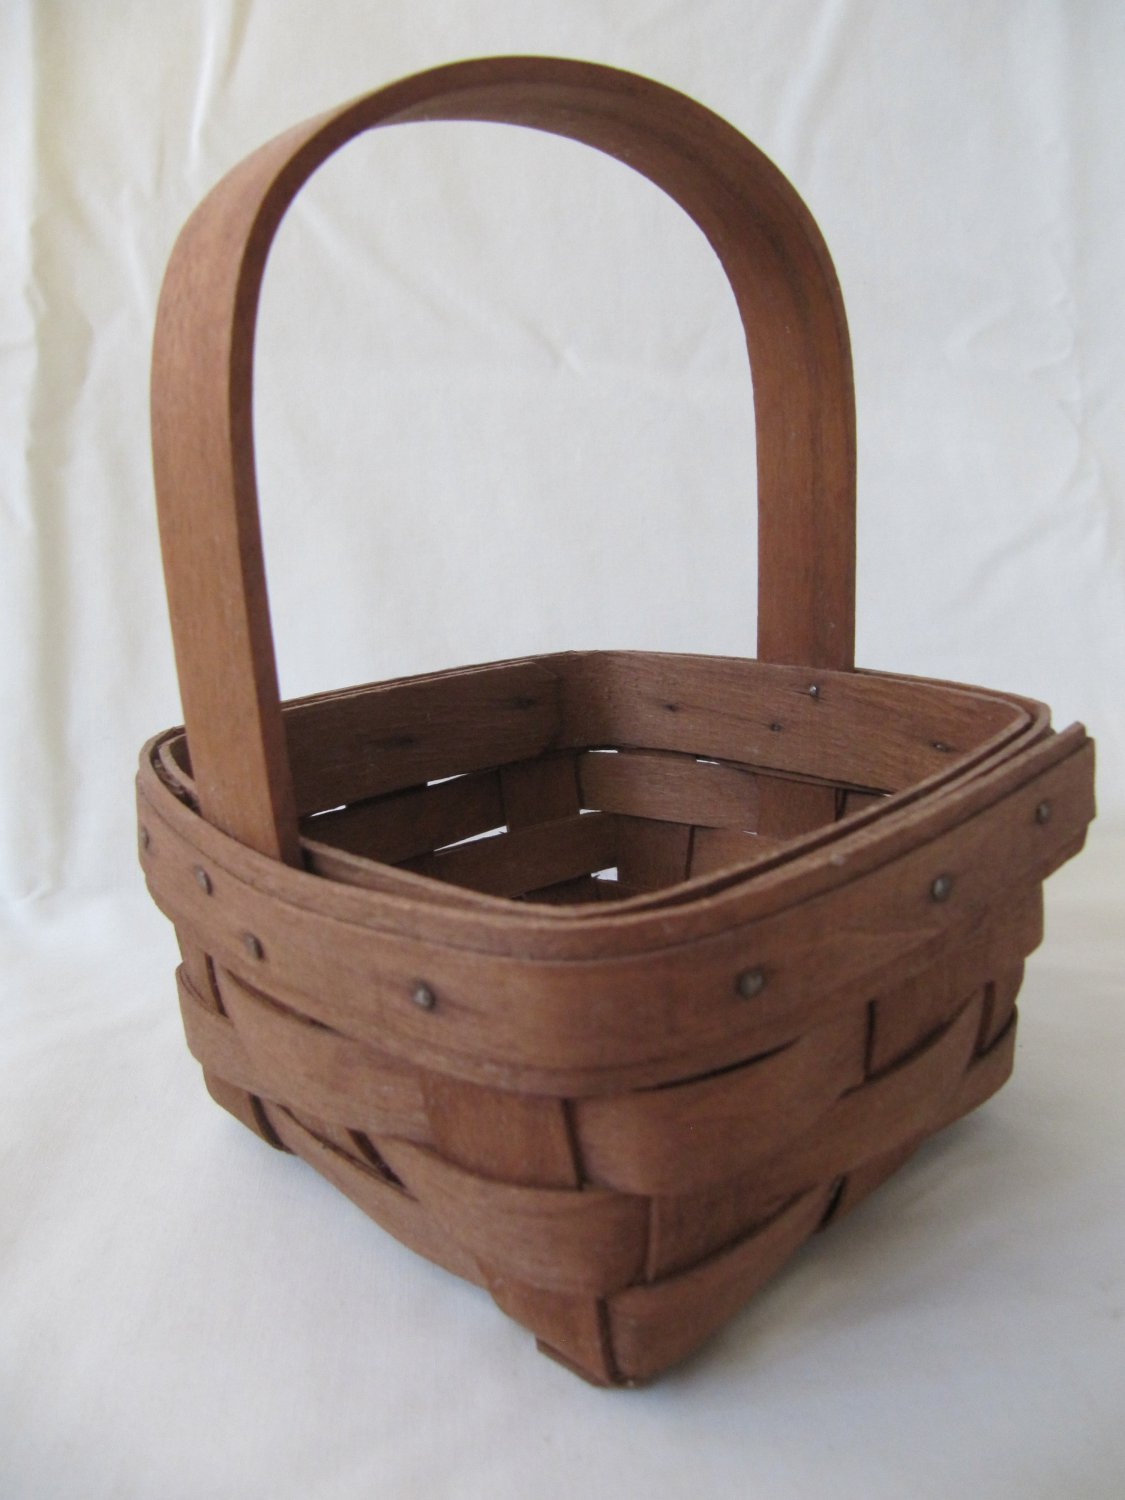 Longaberger Potpourri Basket 1989 Retired Small Traditional Hand Woven Wood with Handle